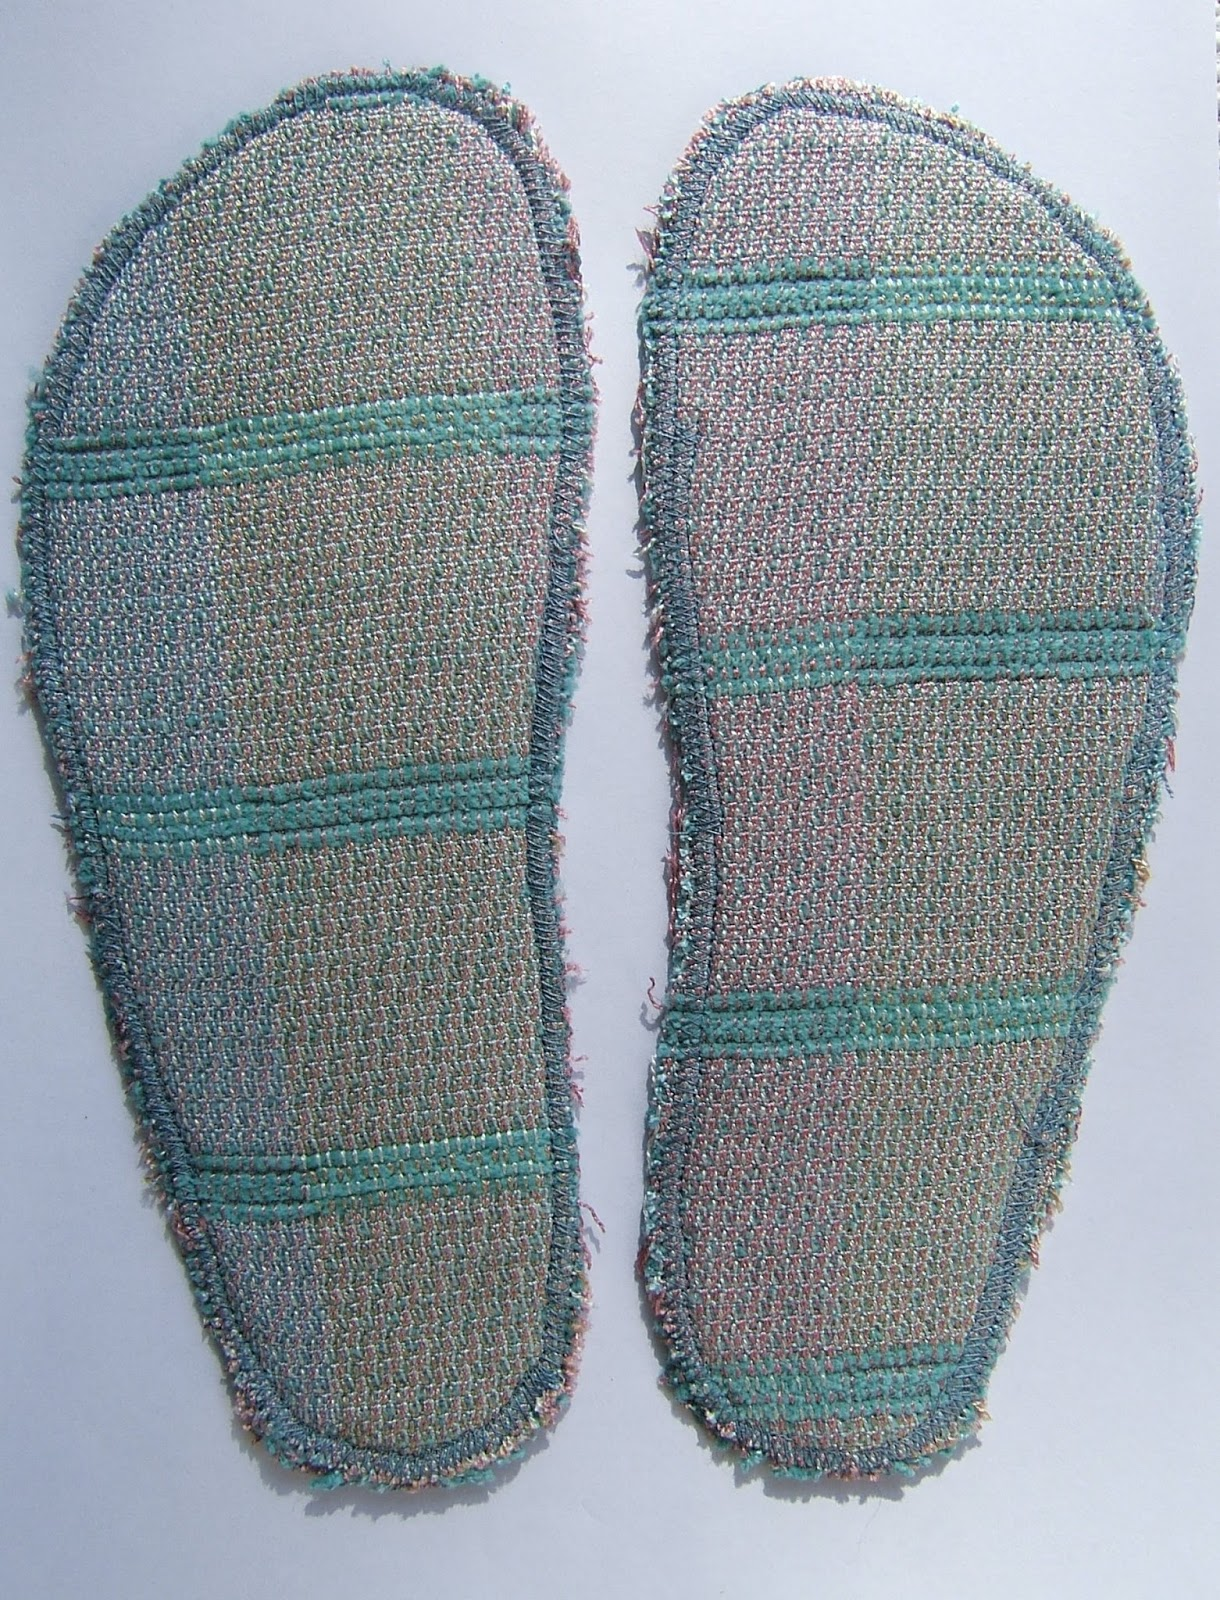 Knitting Pattern For Slippers With Soles : aussie knitting threads: How to make soles for knitted slippers